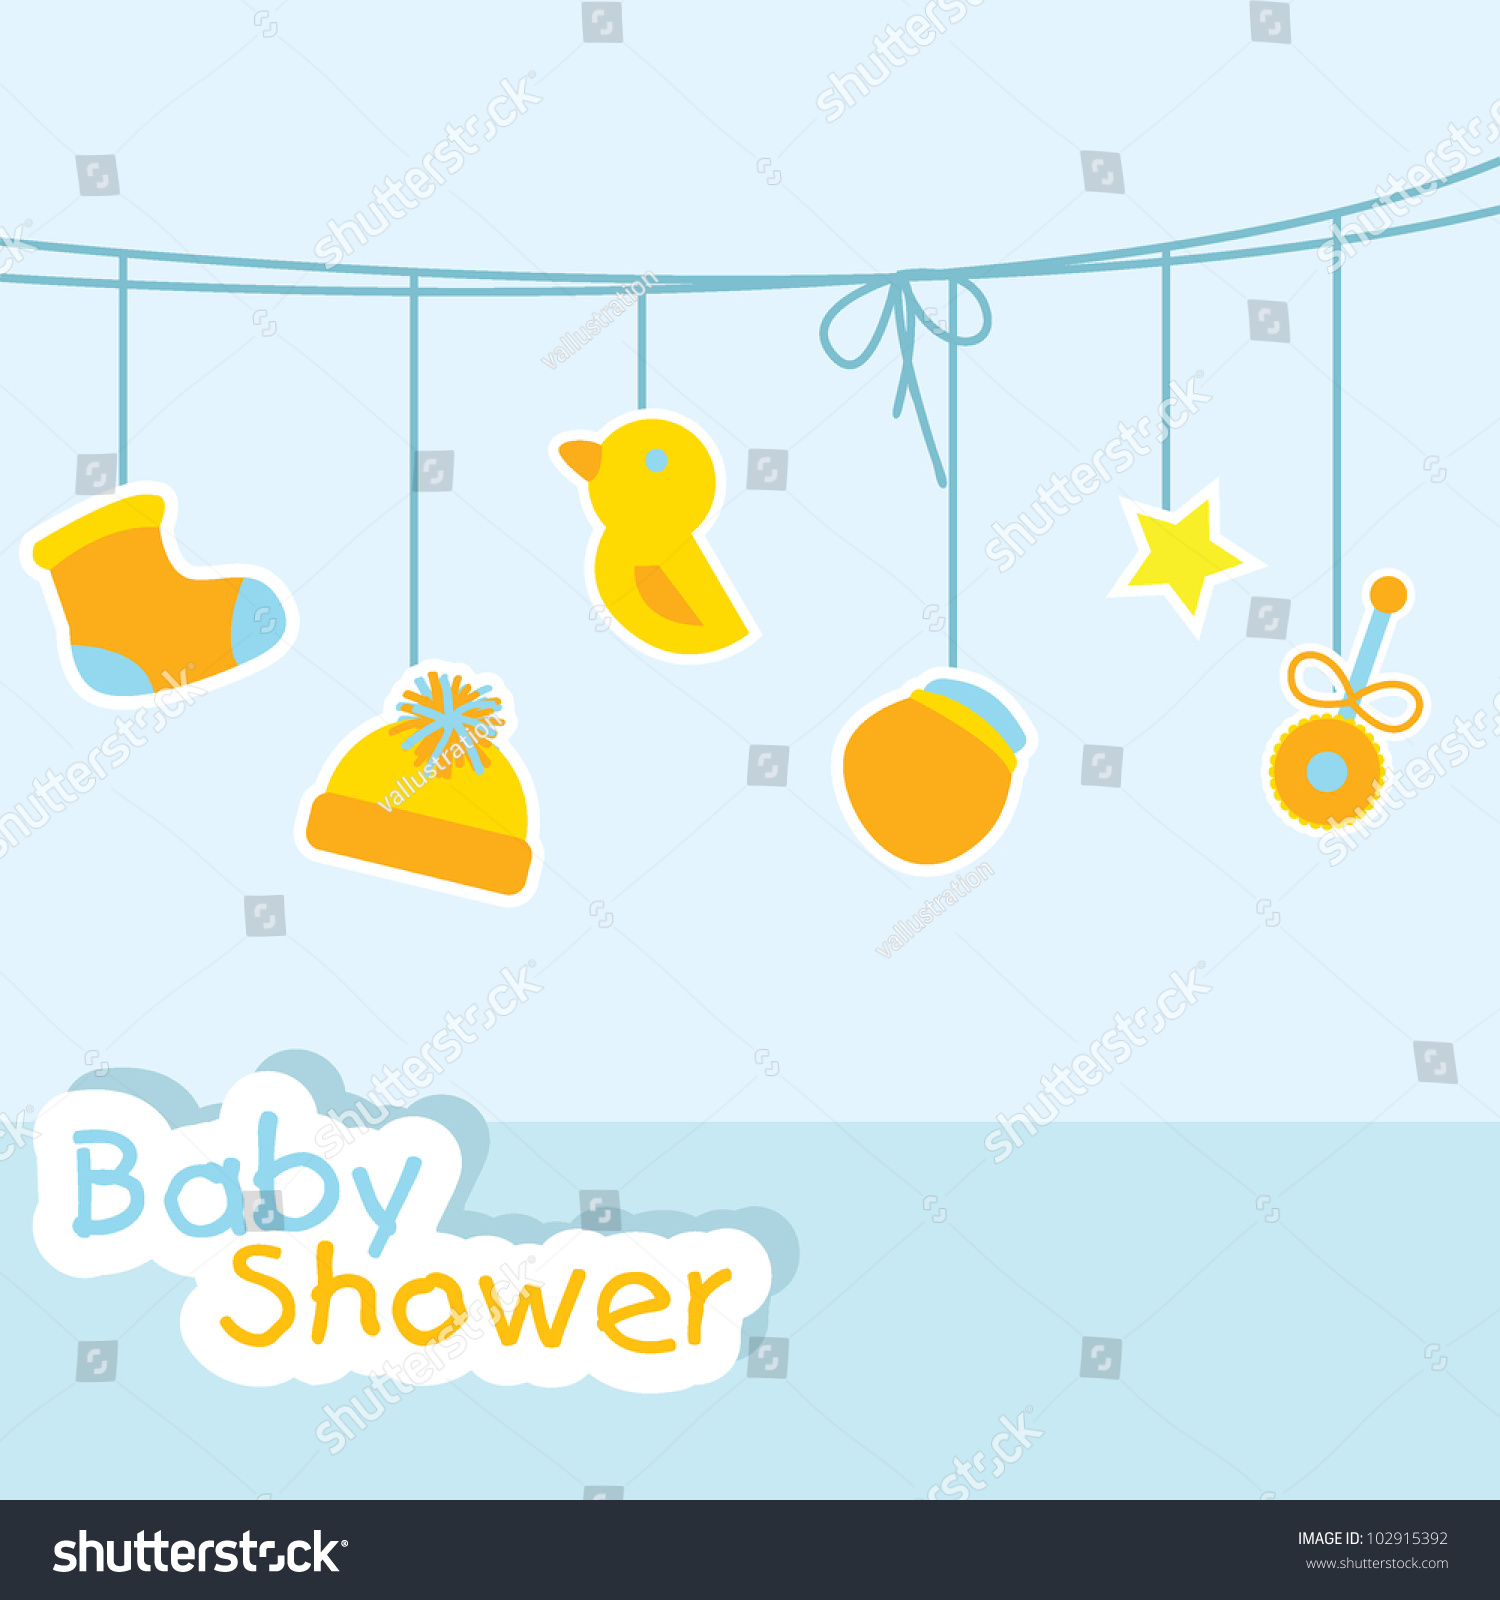 baby shower background for baby stuff greeting cards and